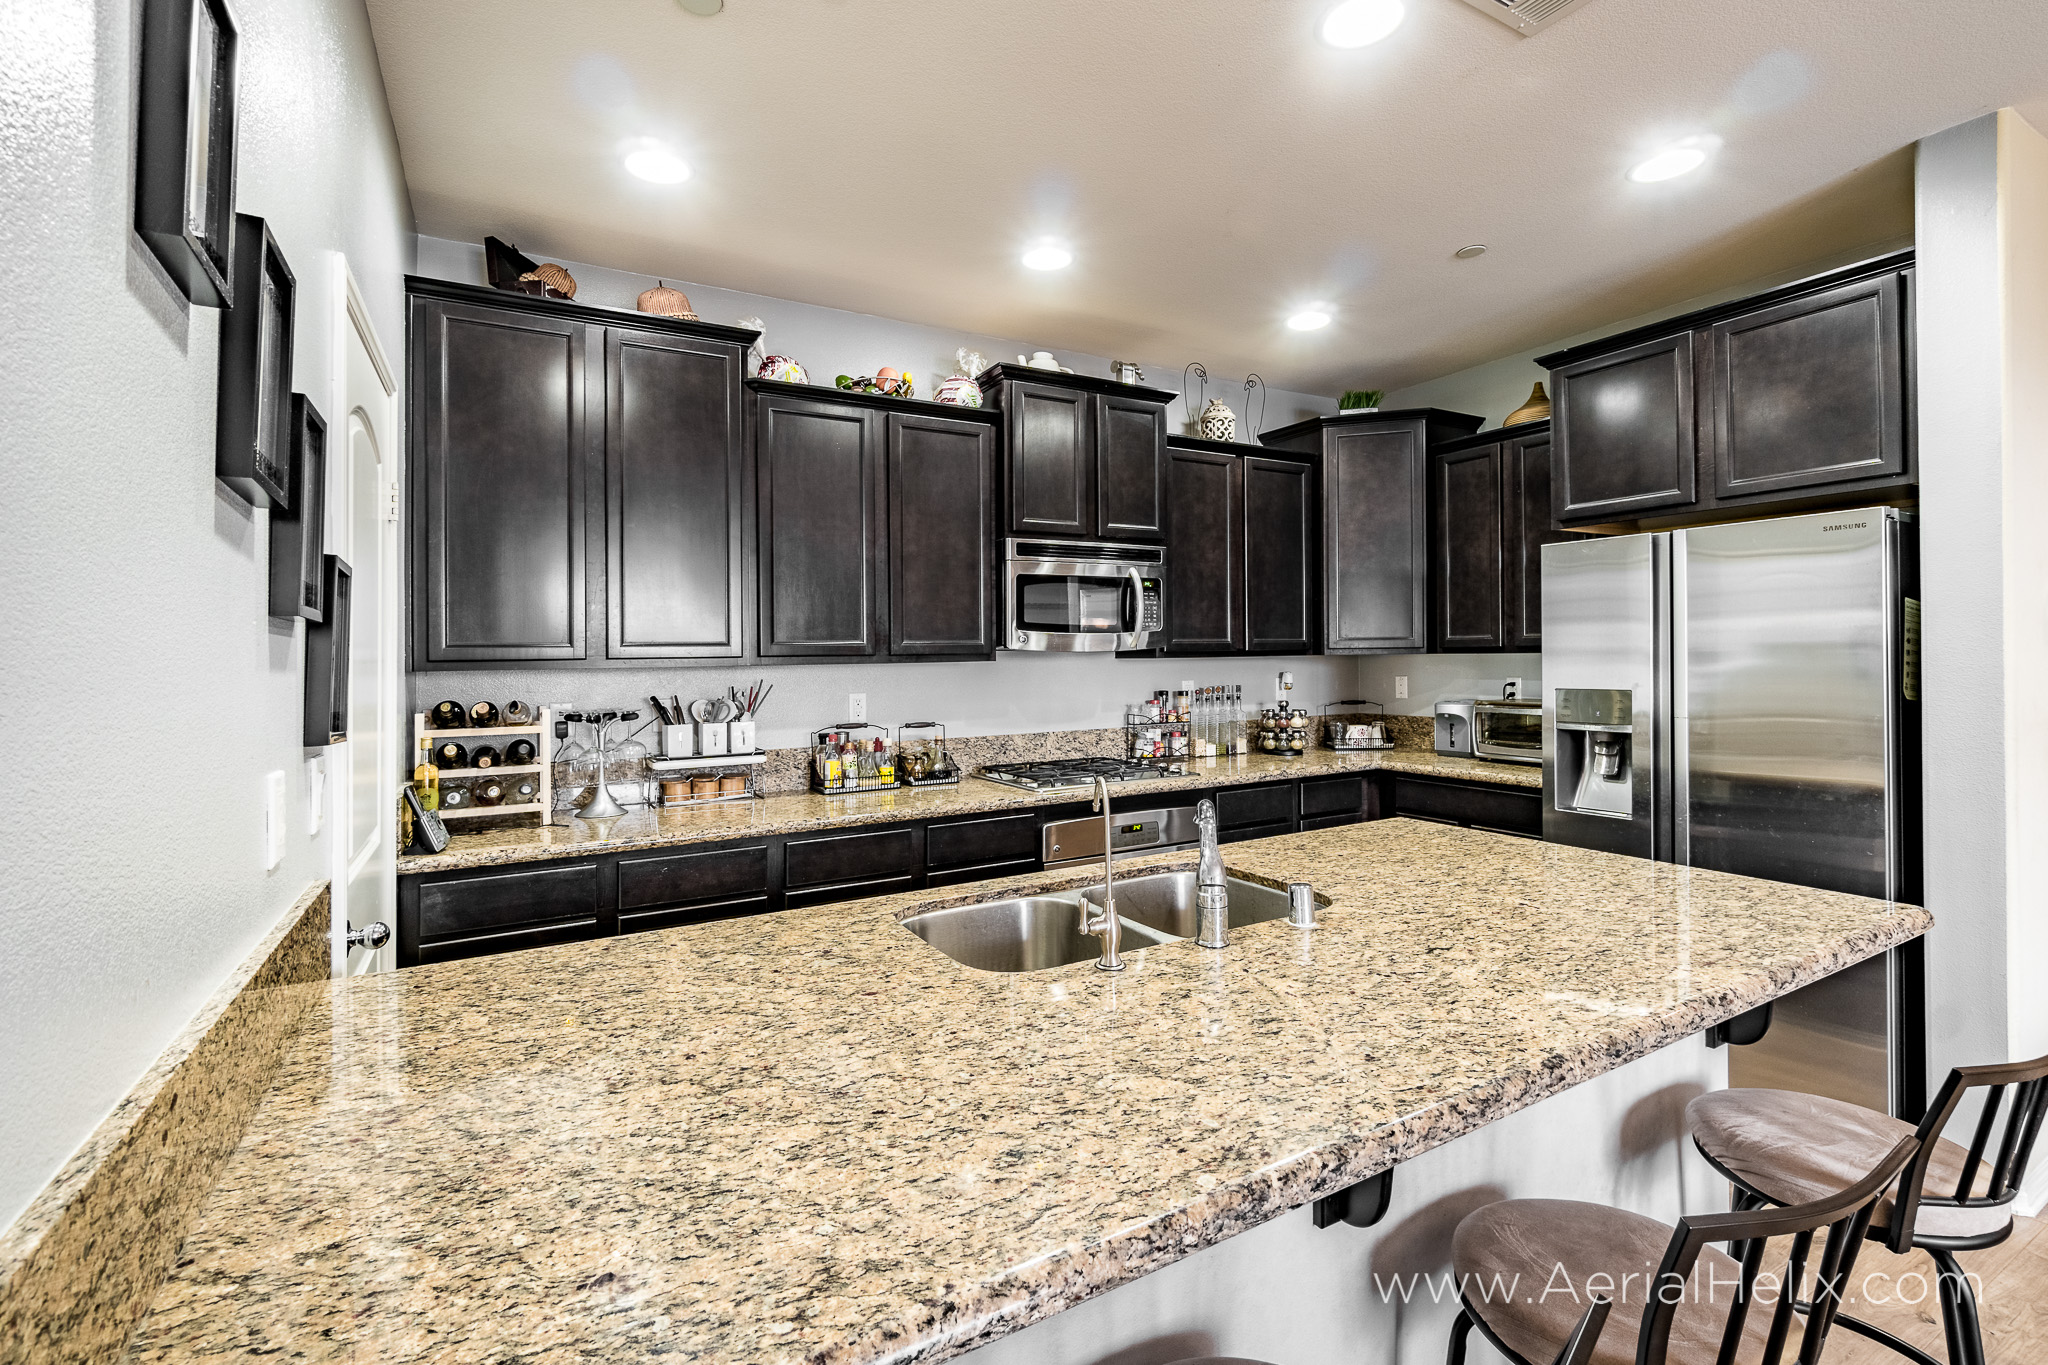 HELIX Morhouse Ave - Real-estate-photographer-19.jpg